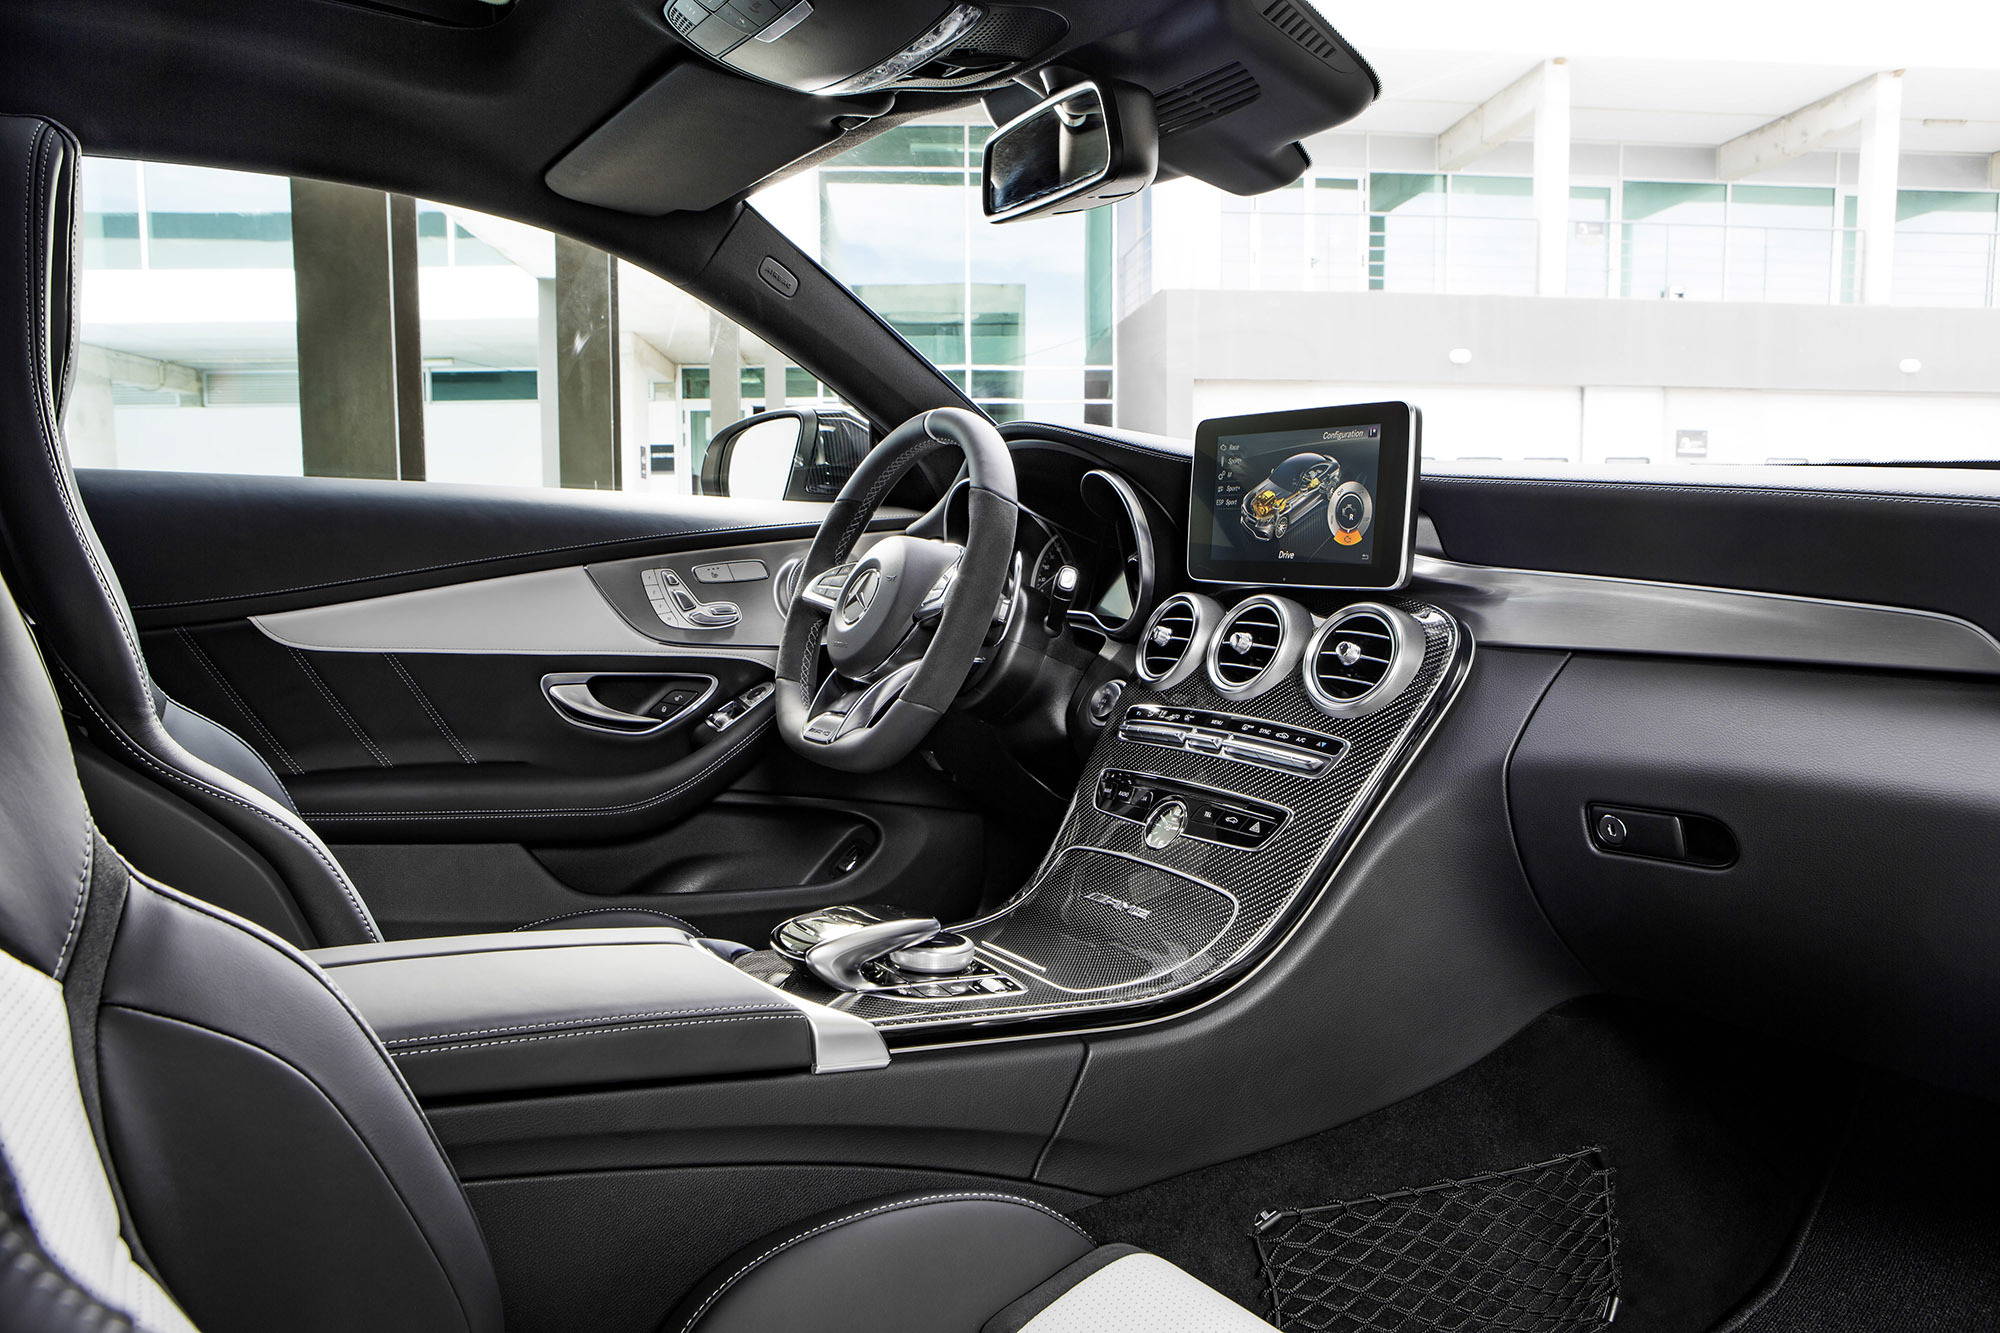 Preview: 2017 Mercedes-AMG C63 Coupe - Page 3 of 3 - Autos.ca | Page 3